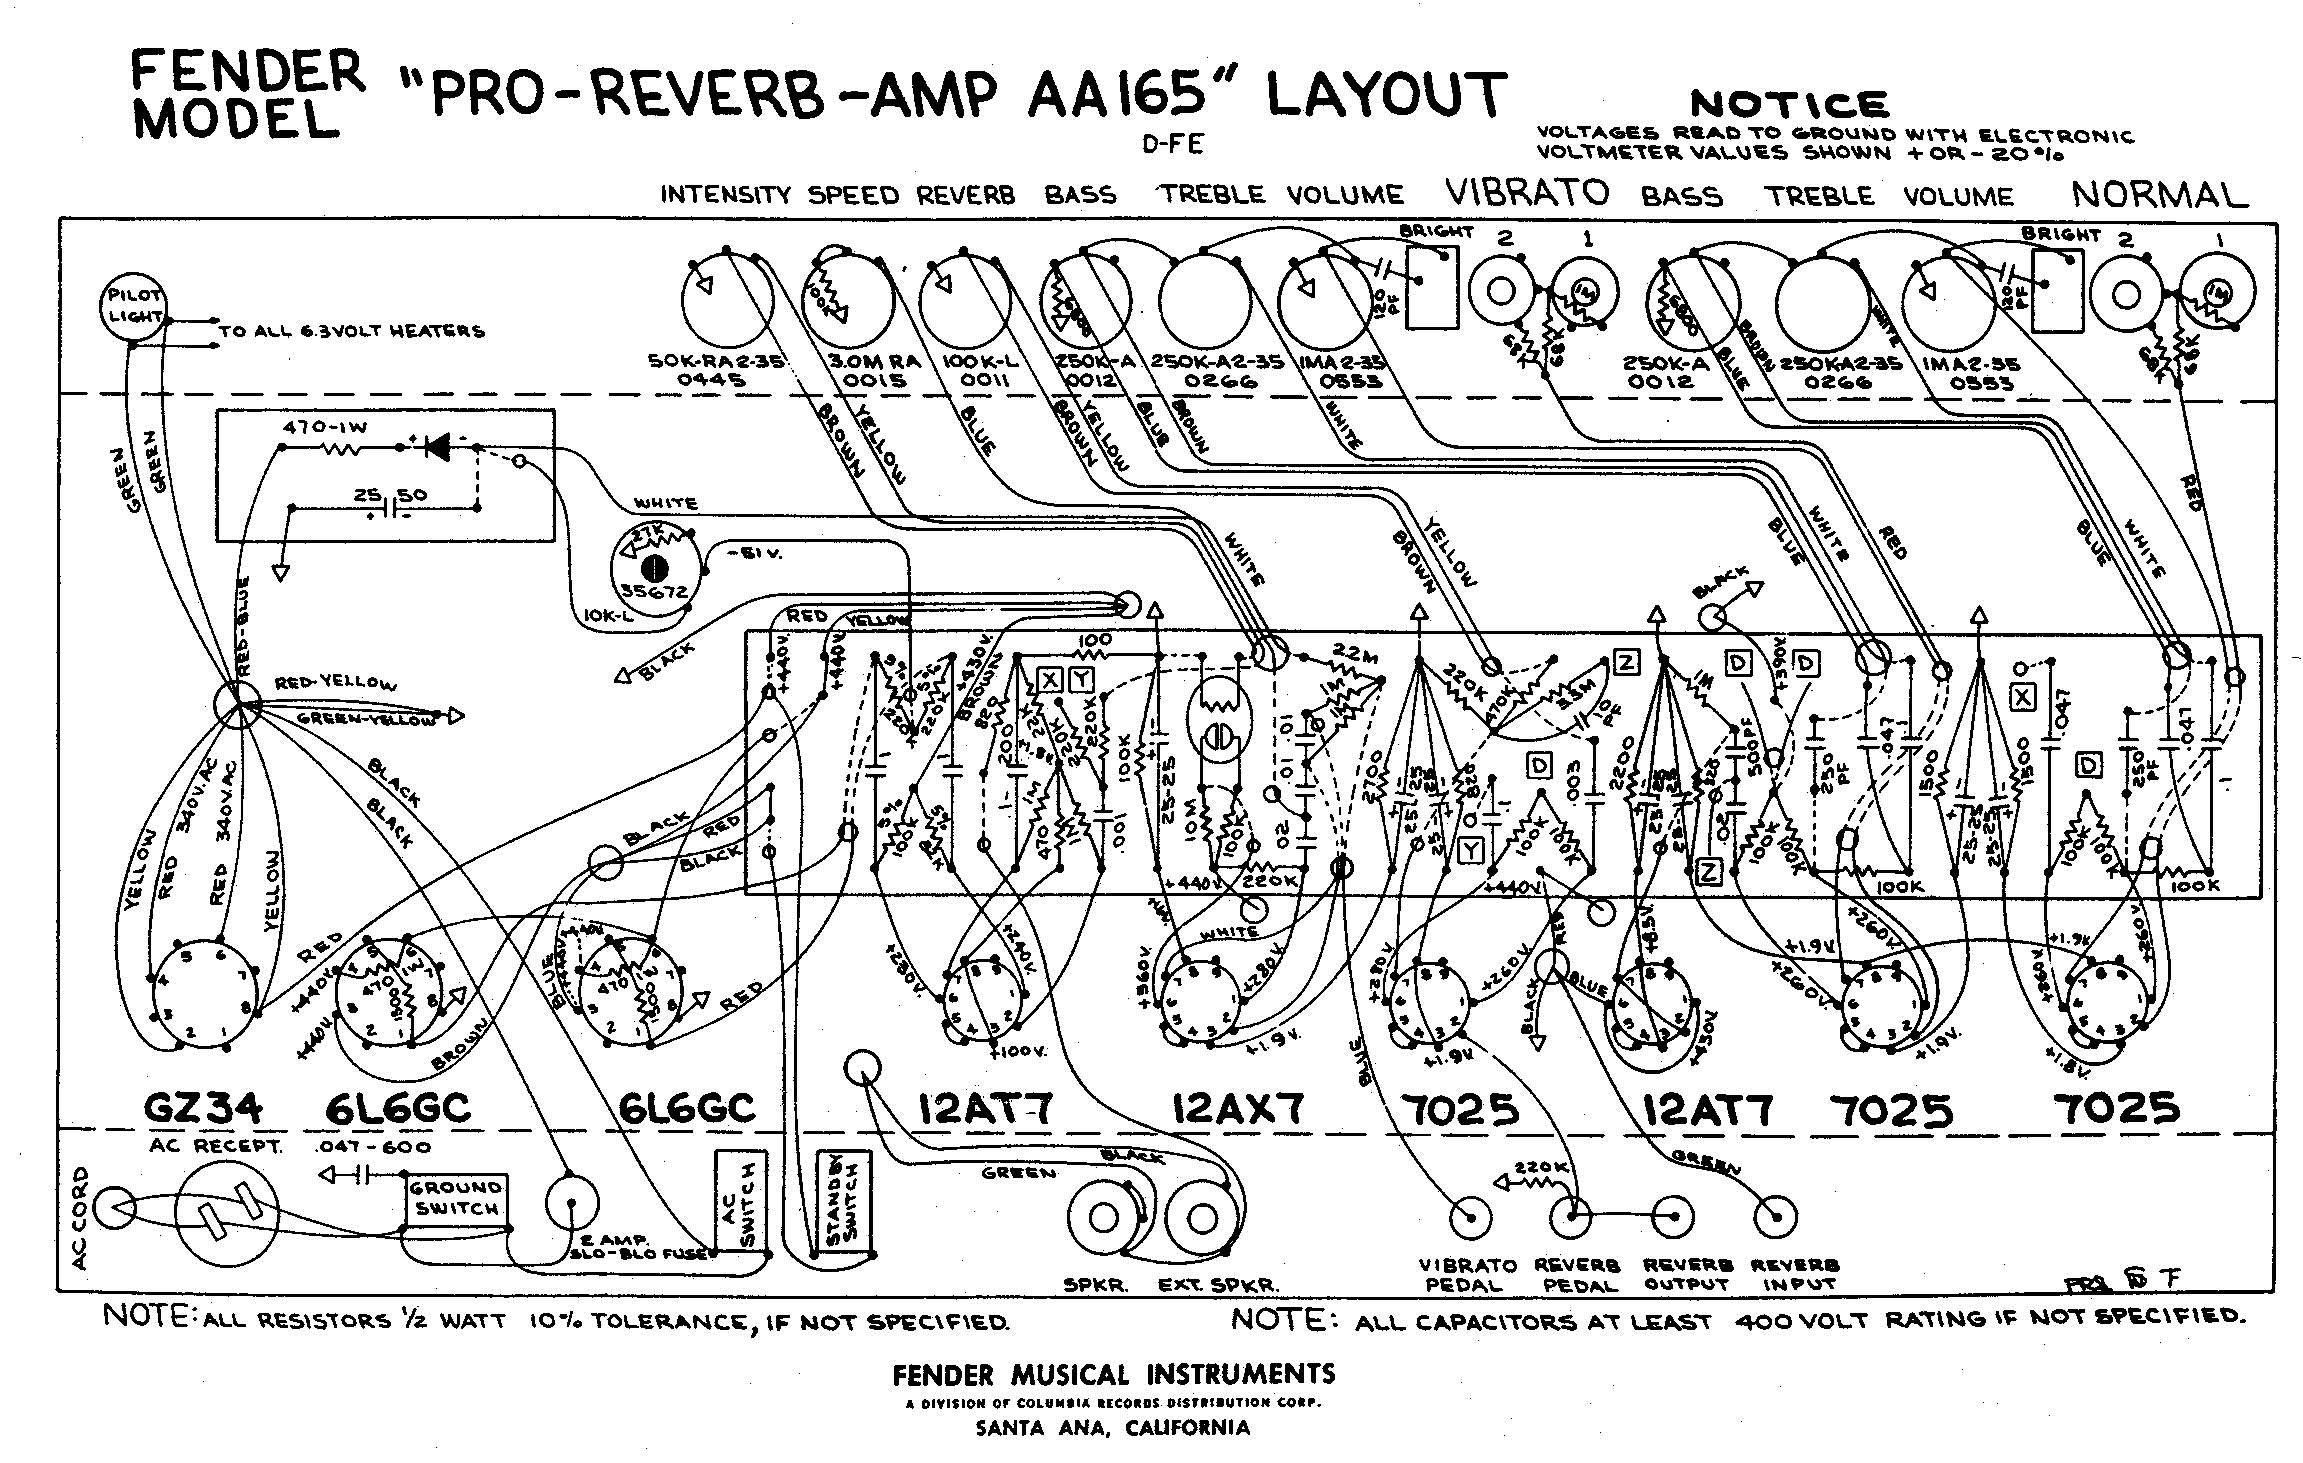 Fender pro reverb aa165. pro-reverb-aa165-layout.